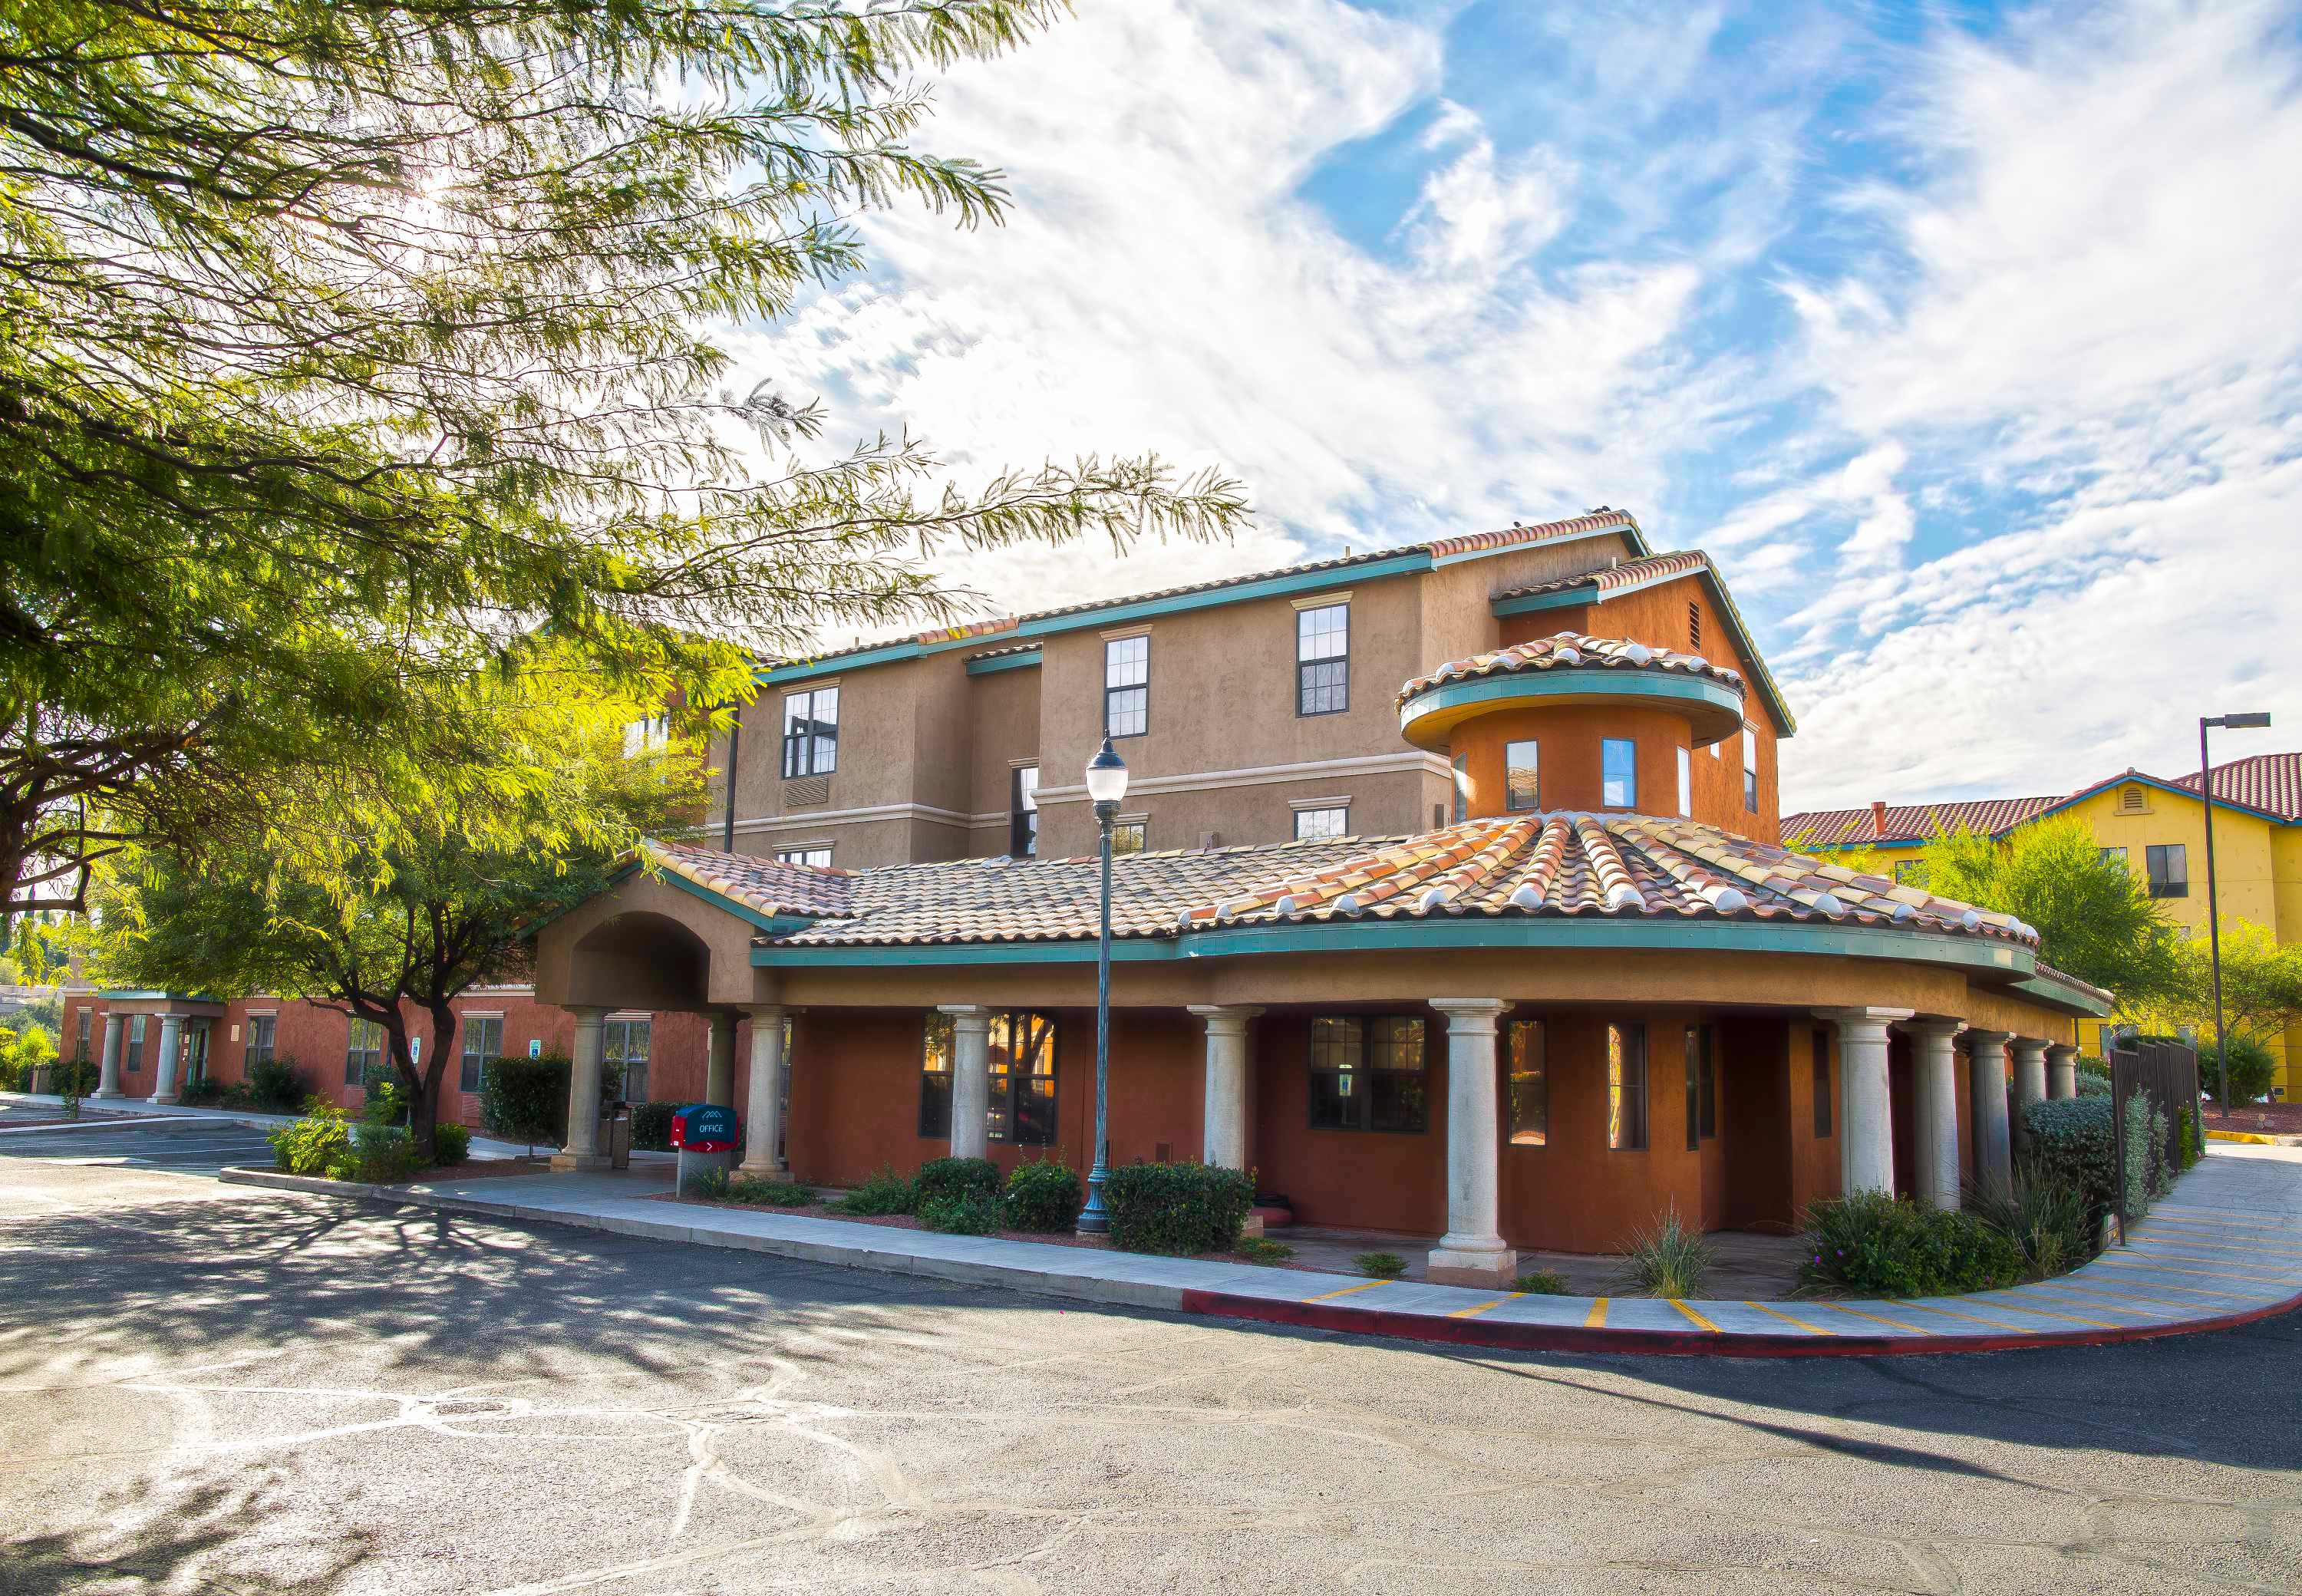 Towneplace Suites By Marriott Tucson In Tucson Az 85704